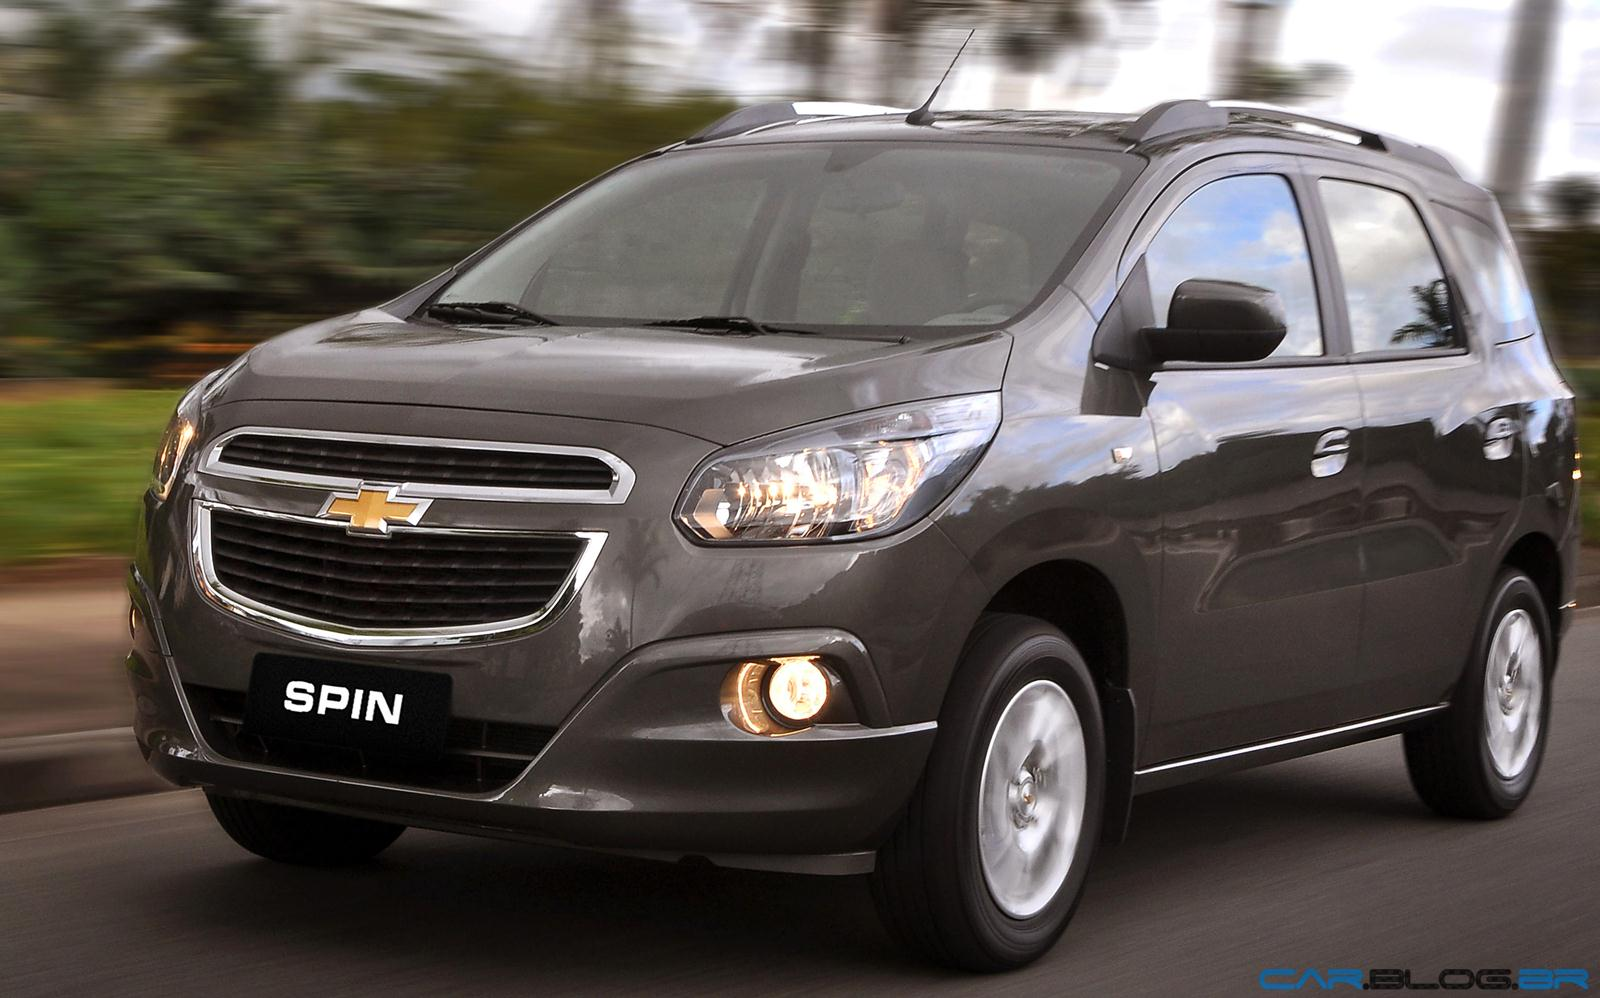 Nova Chevrolet Spin 2013 Video Oficial Wallpapers Download